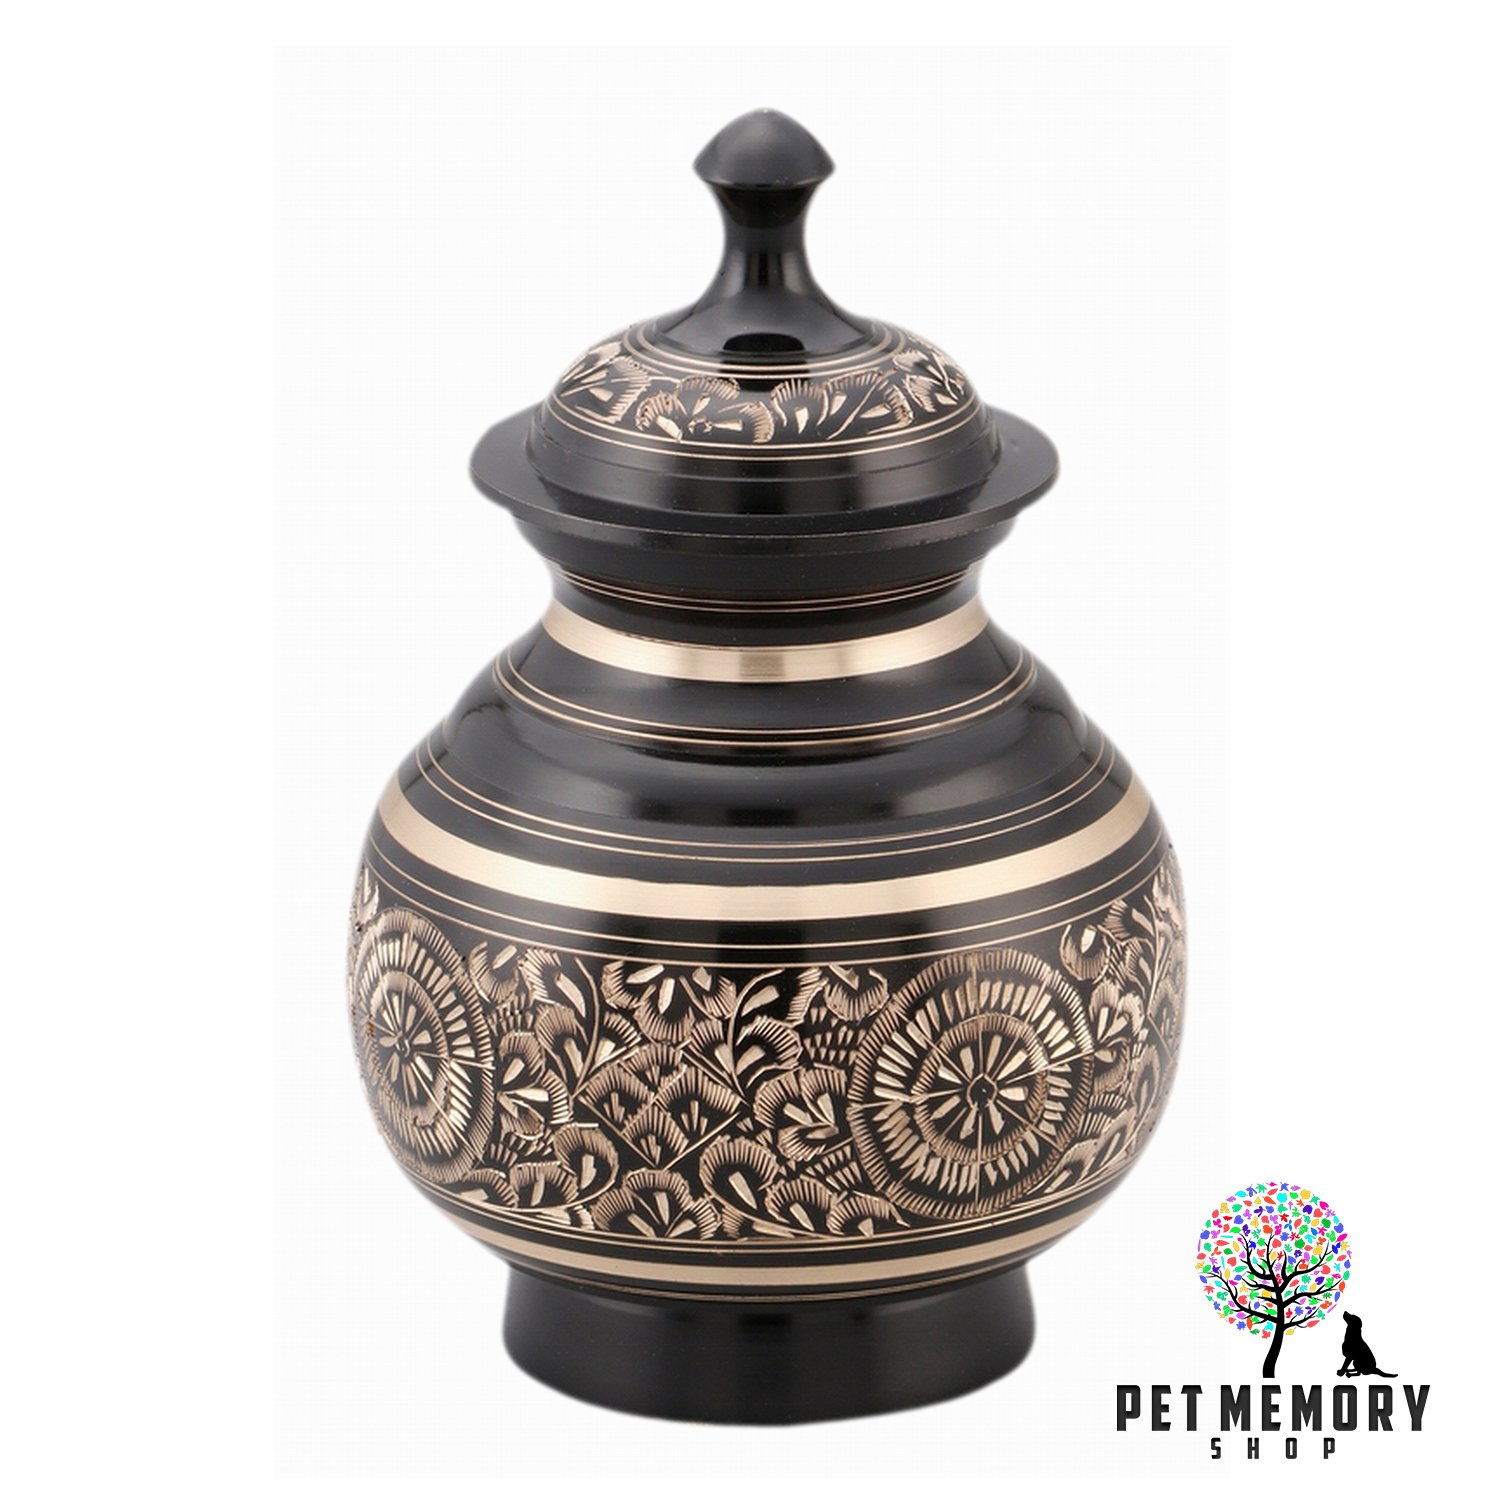 Pet Memory Shop Urn for Pets - Hand-Engraved w/Free Velvet URN Bag - Choose from 2 Styles - for Dogs, Cats, Other Animals ... (Black) by Pet Memory Shop